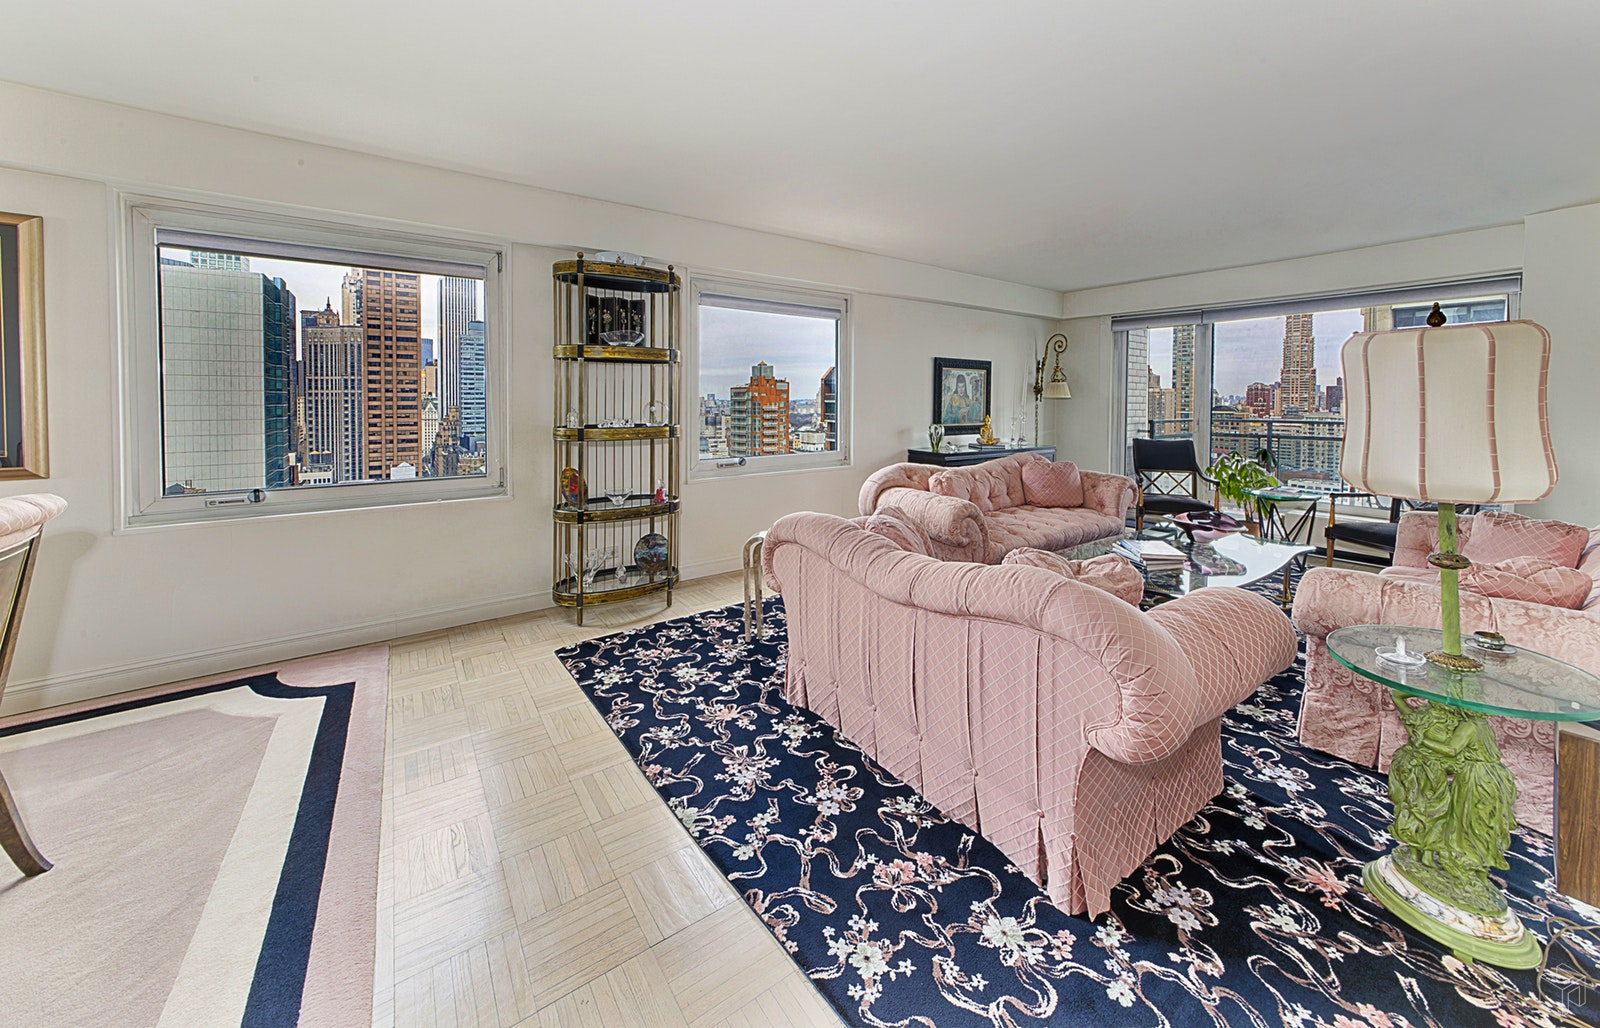 303 East 57th Street 29e, Midtown East, NYC, 10022, $899,000, Property For Sale, Halstead Real Estate, Photo 1